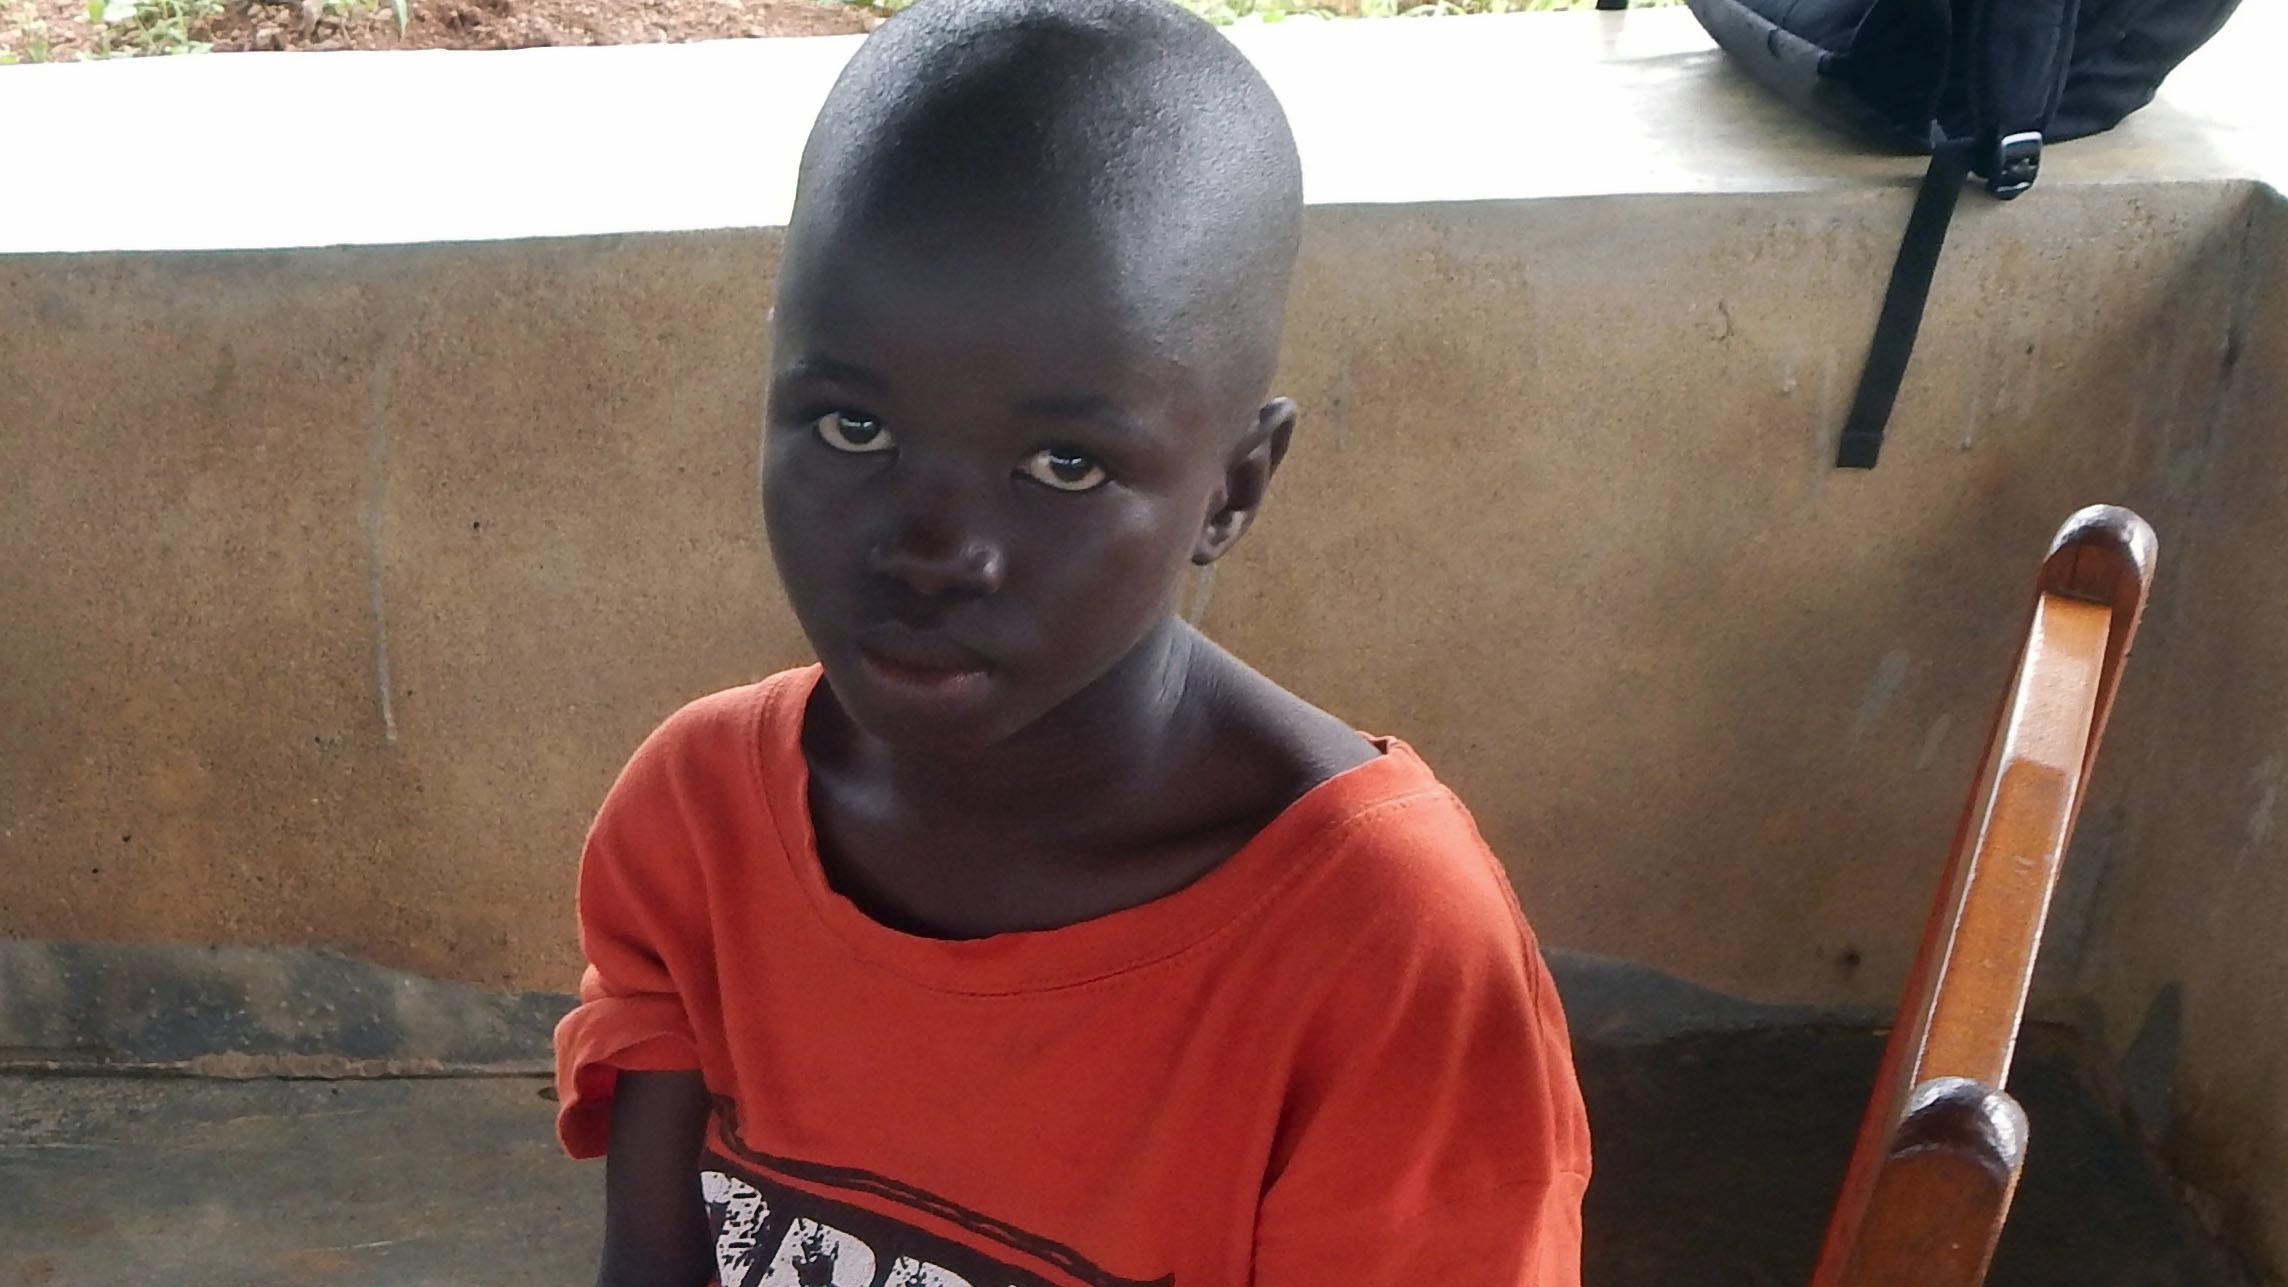 Lamin Borbor, 8, will live at the Interim Care Center for Ebola orphans in Kailahun town until social workers can reunite him with extended family or place him in foster care.